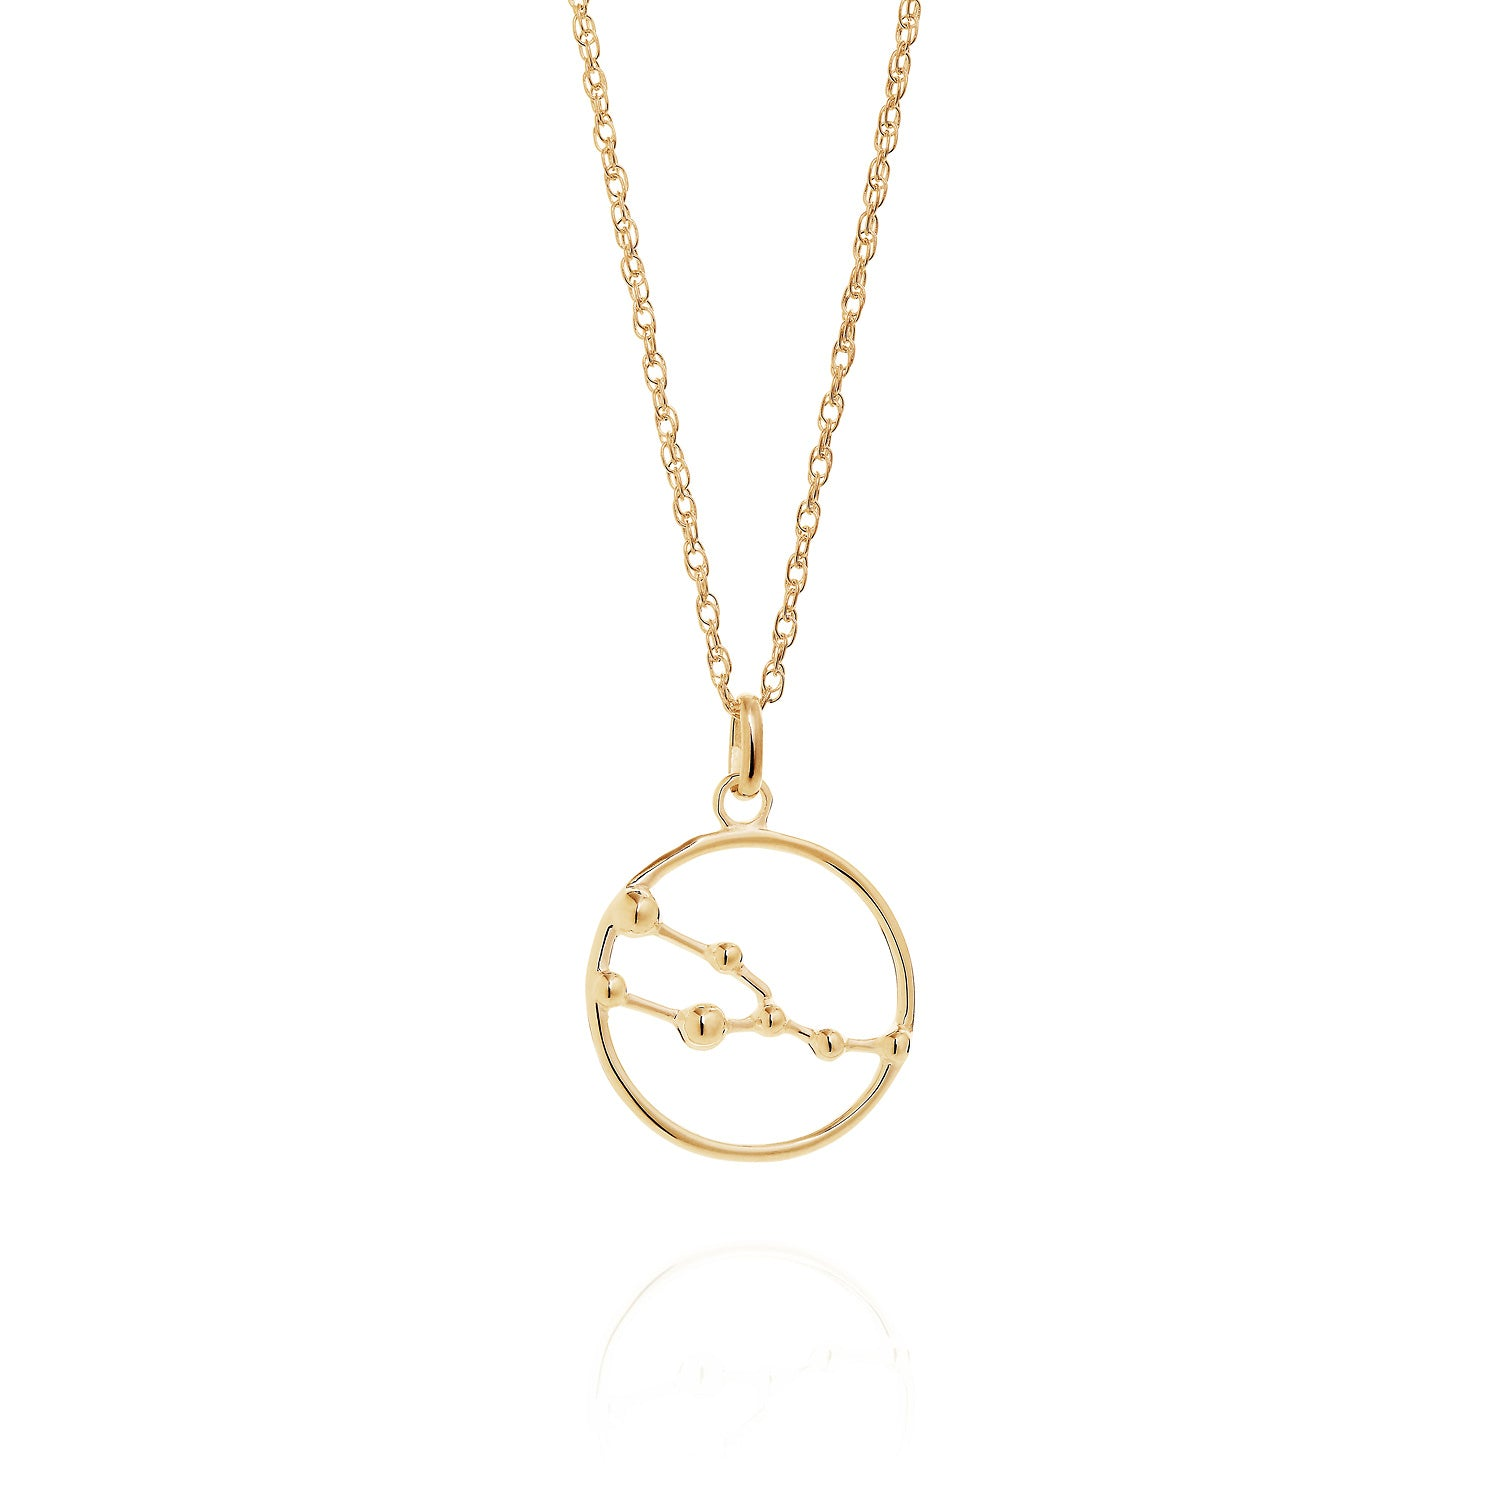 Gold Taurus astrology star sign Necklace